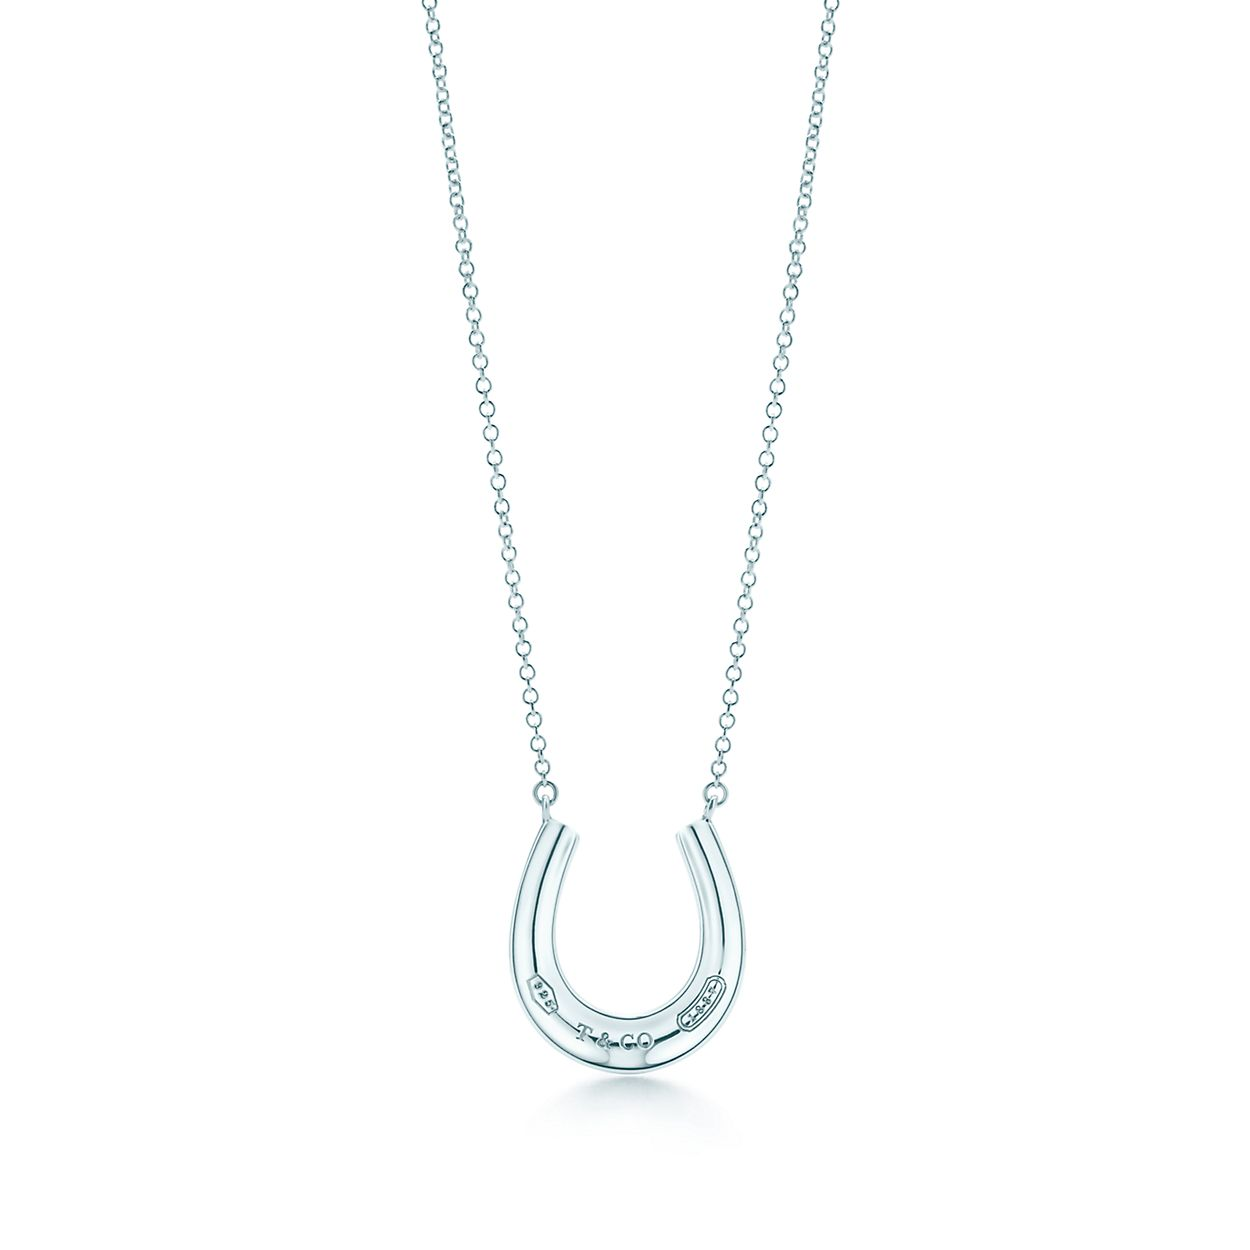 Tiffany 1837 horseshoe pendant in sterling silver tiffany co tiffany 1837horseshoe pendant mozeypictures Gallery